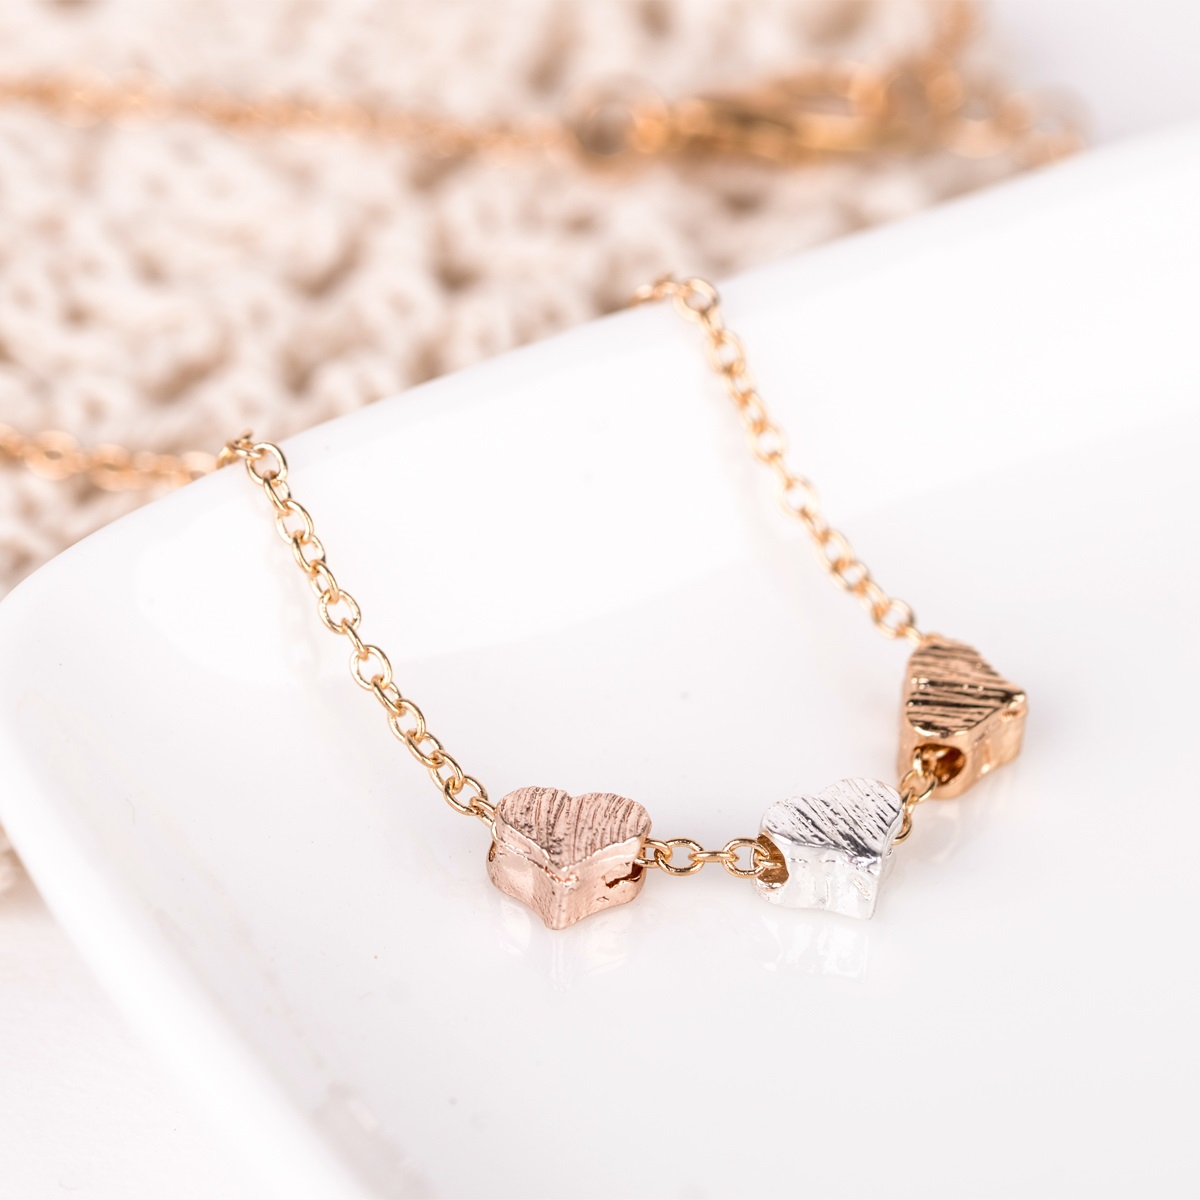 3Heart Necklace